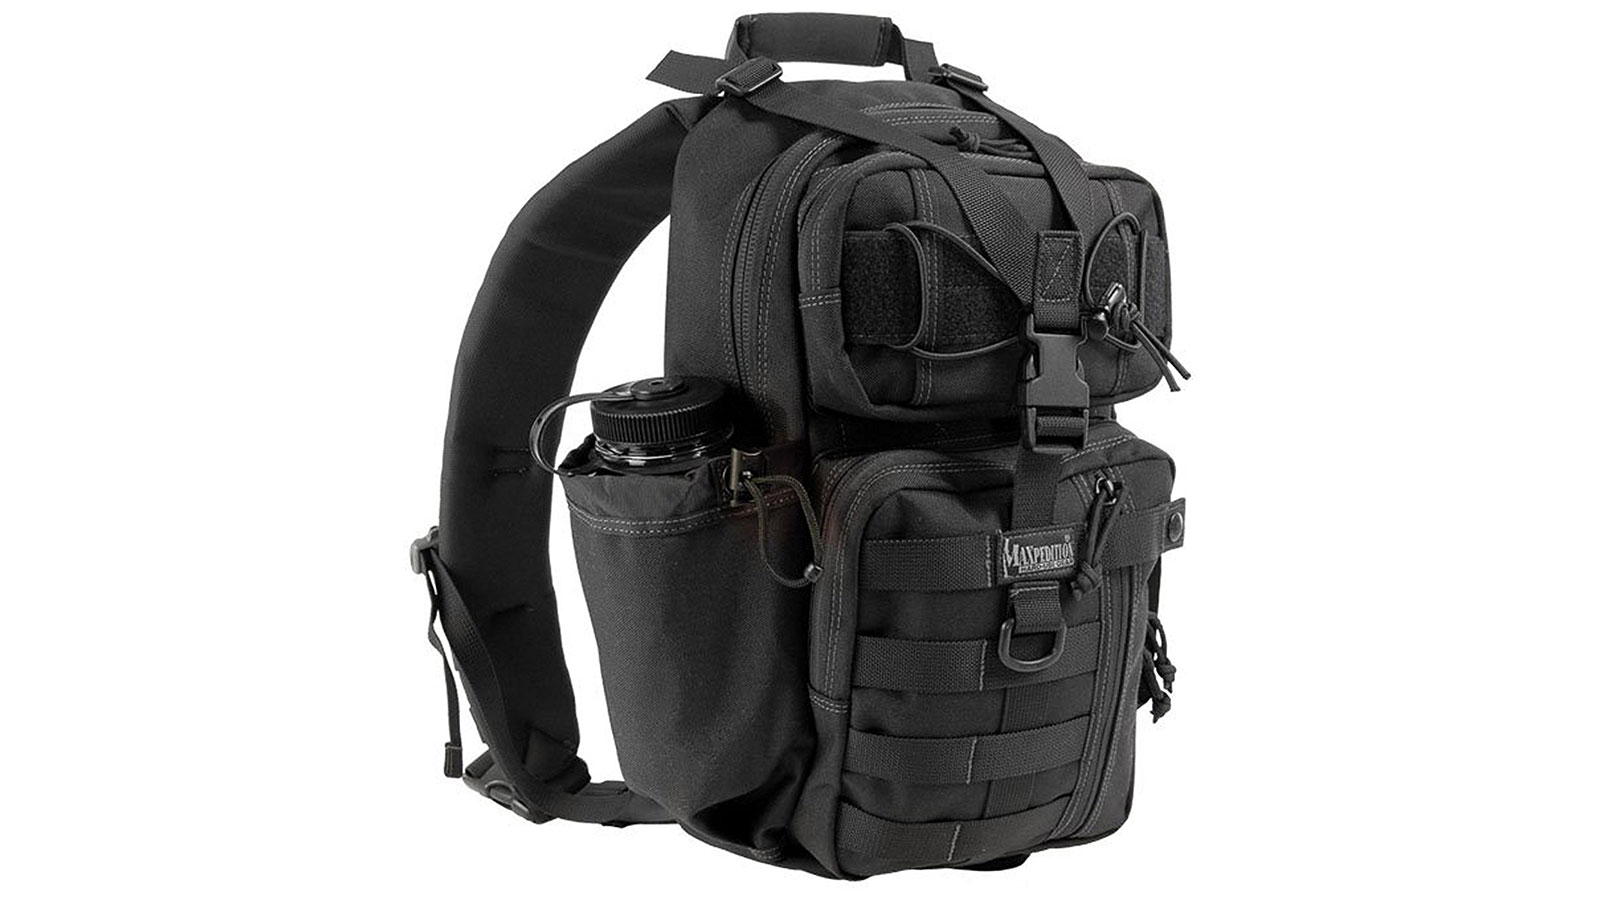 Maxpedition Sitka Gearslinger Tactical Backpack | best tactical backpacks